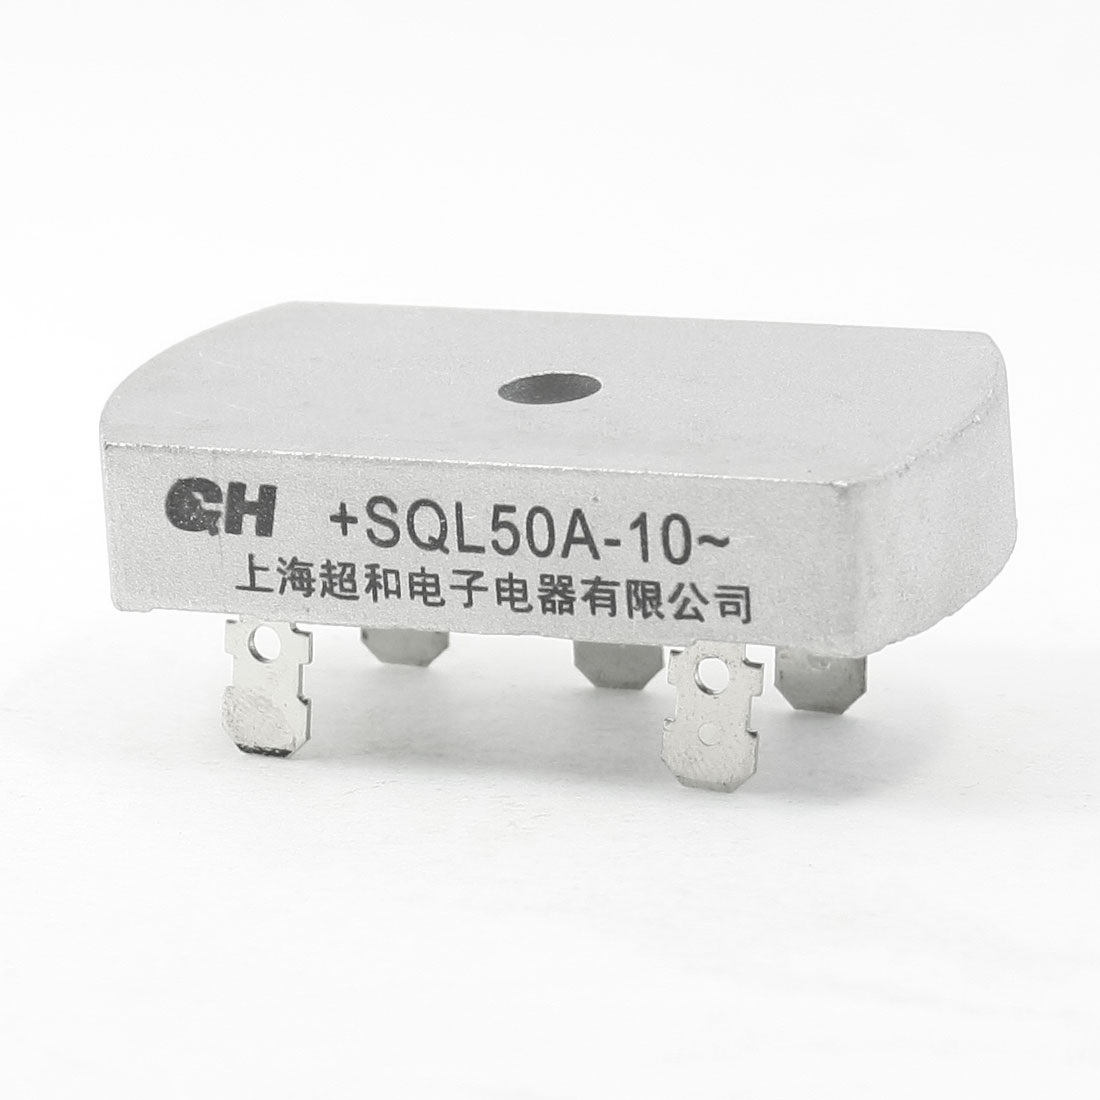 SQL50A-10 1KV 50A Three Phase Bridge Rectifier Half-Wave Silver Tone